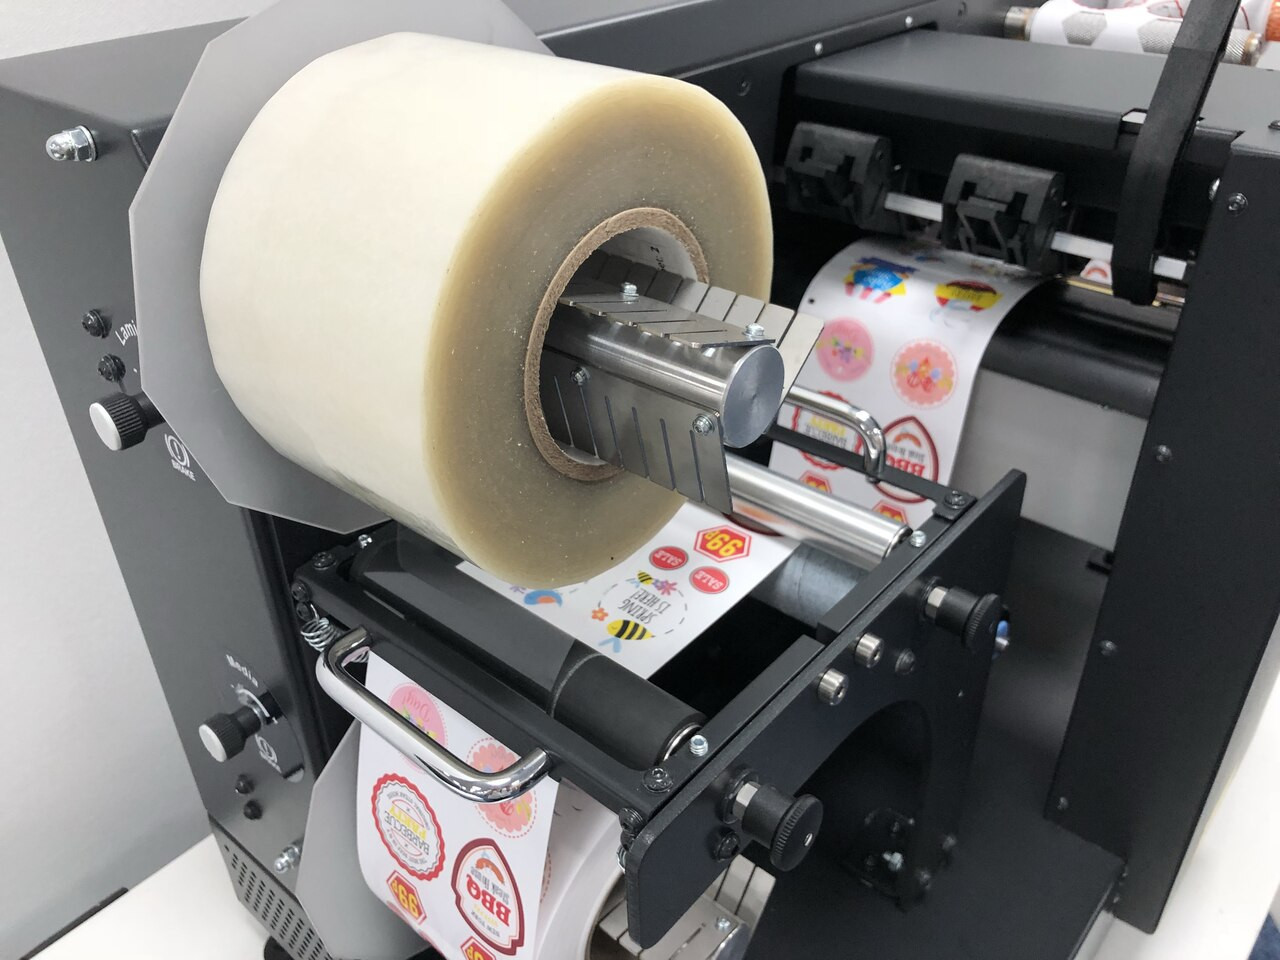 Eclipse Mini Label Finishing System | Label Cutter for Epson TM-C7500